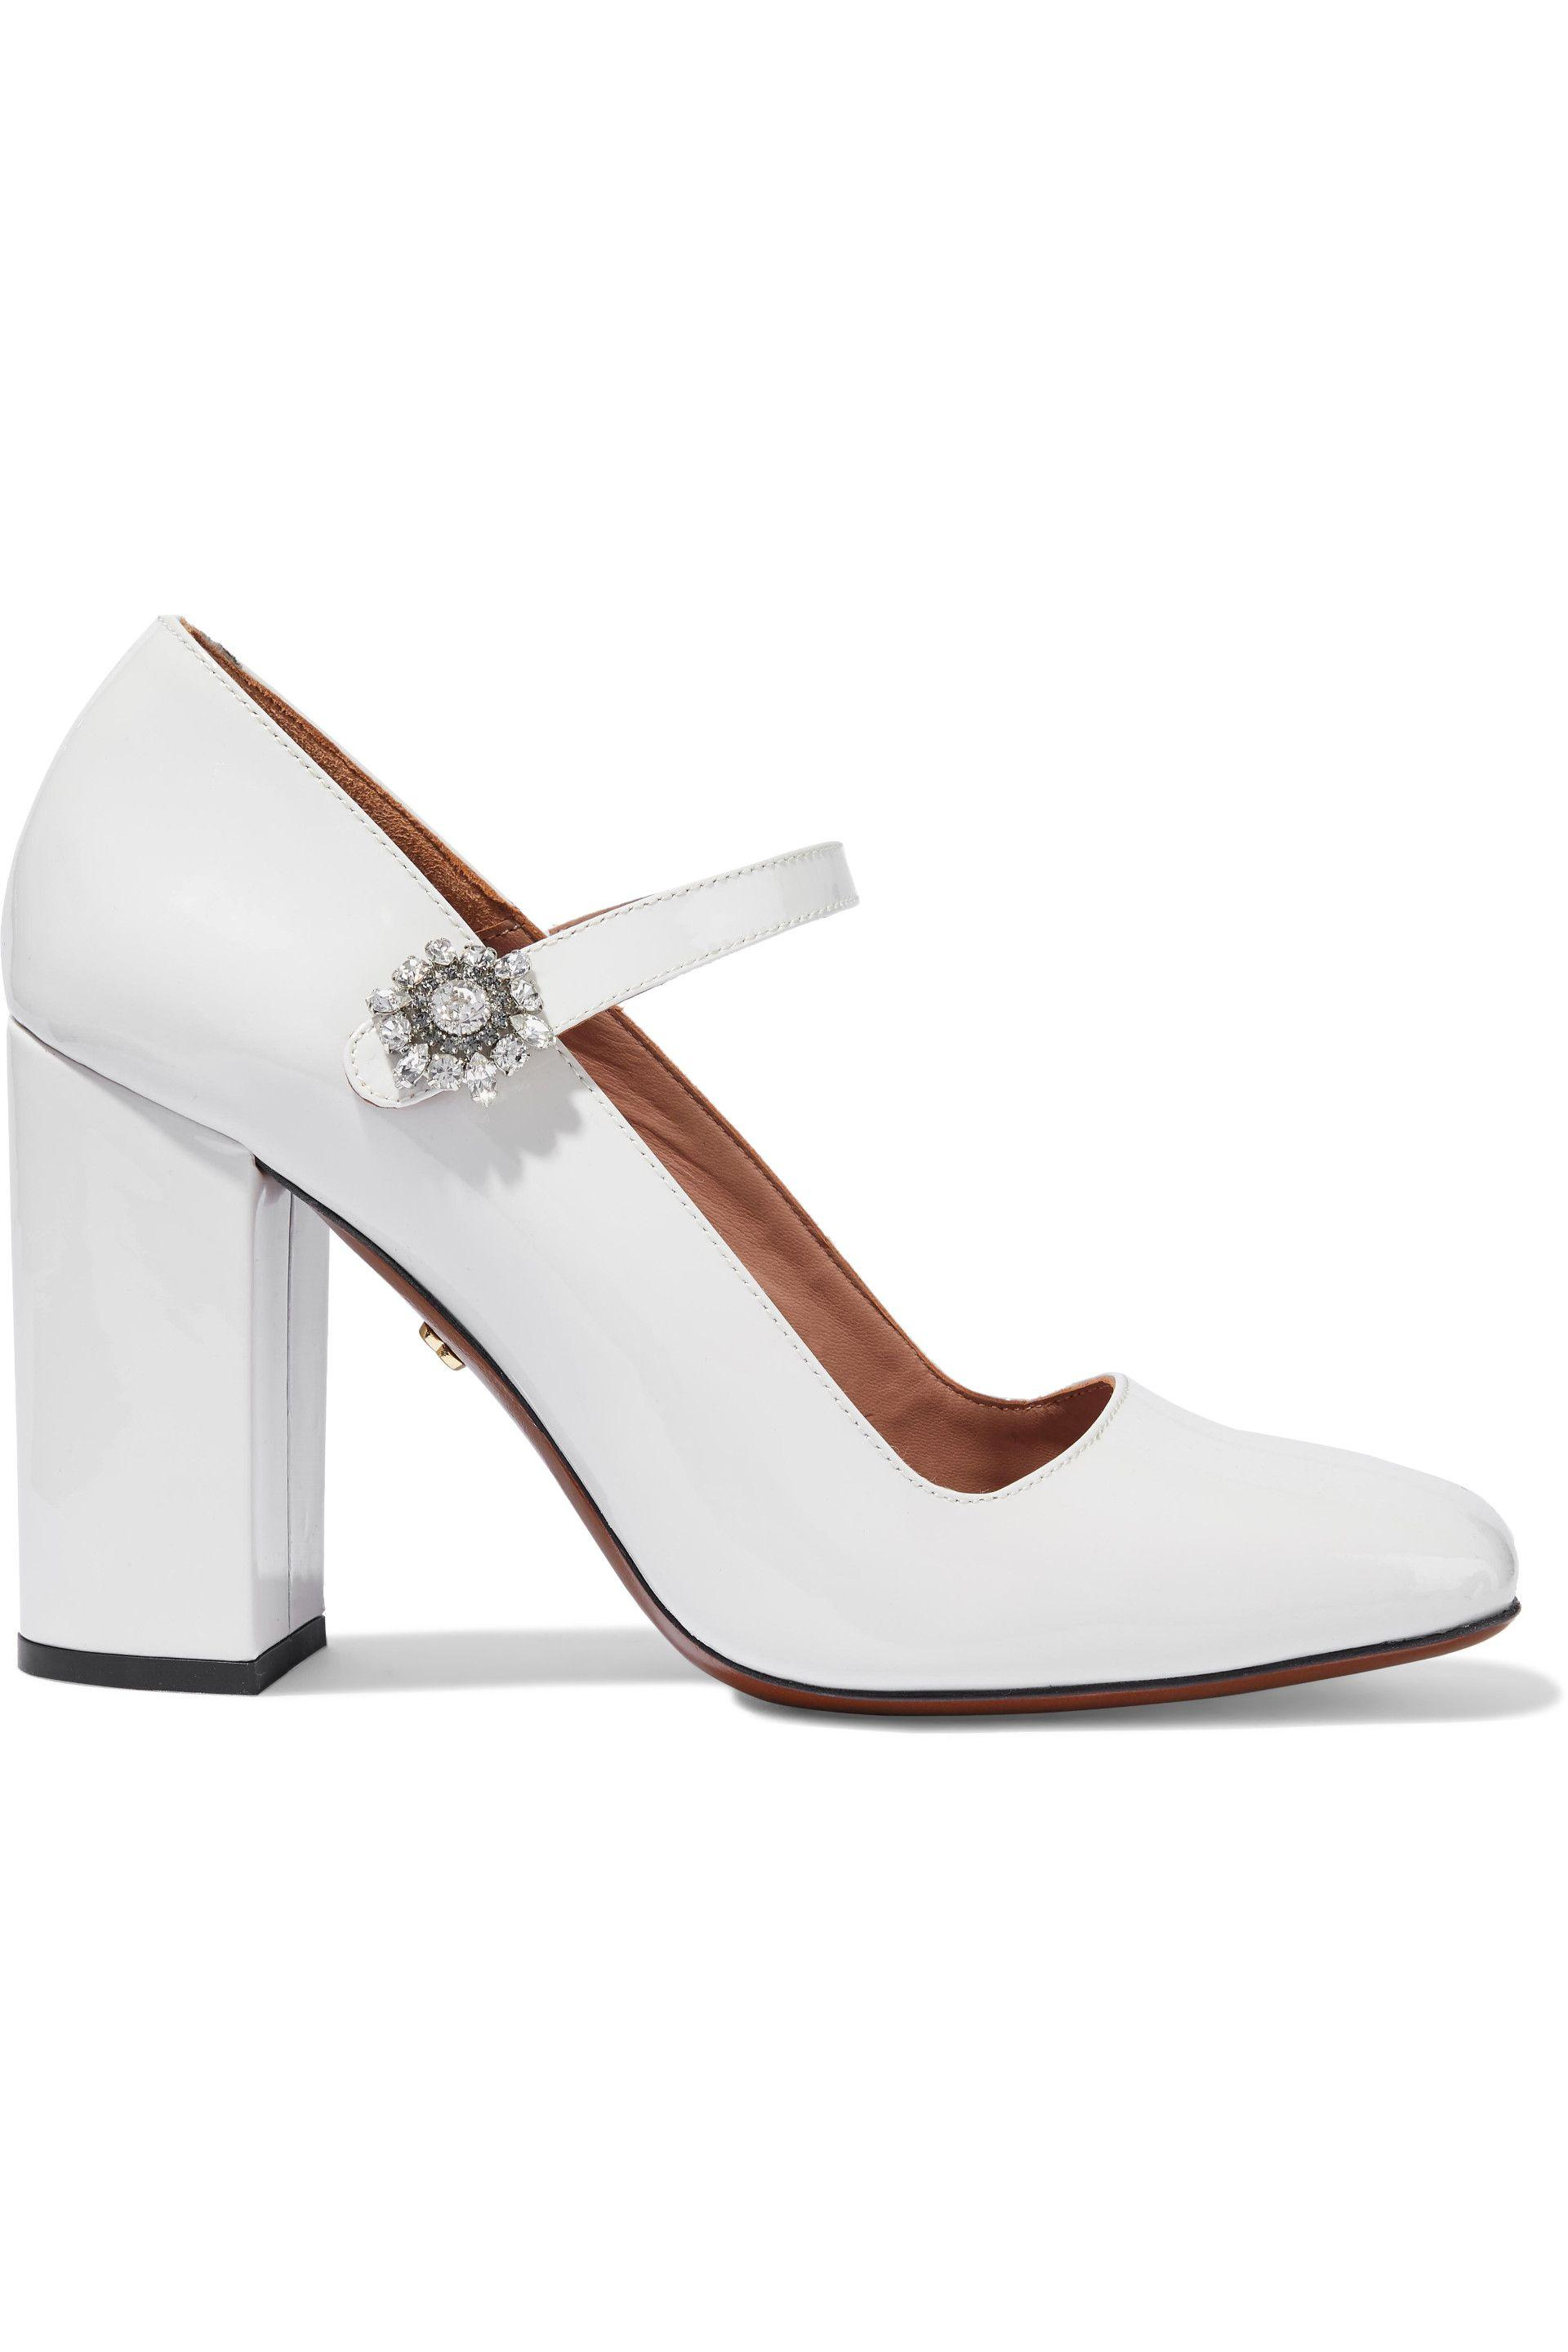 b2ba6d0af95e15 AlexaChung - Woman Crystal-embellished Patent-leather Mary Jane Pumps  Off-white -. View fullscreen